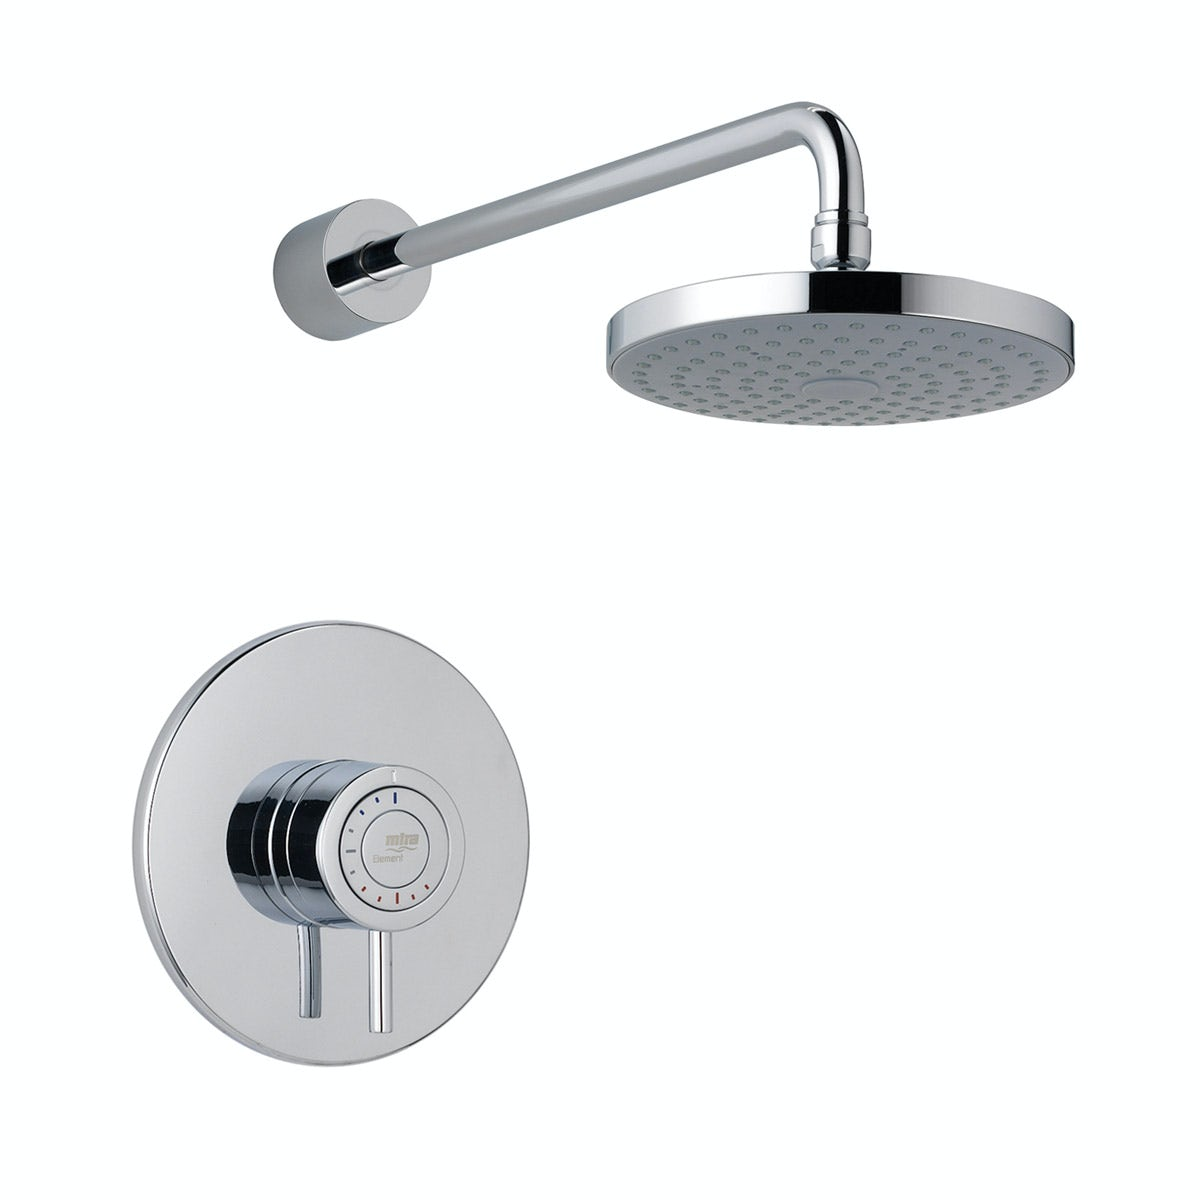 Mira Element BIR thermostatic mixer shower